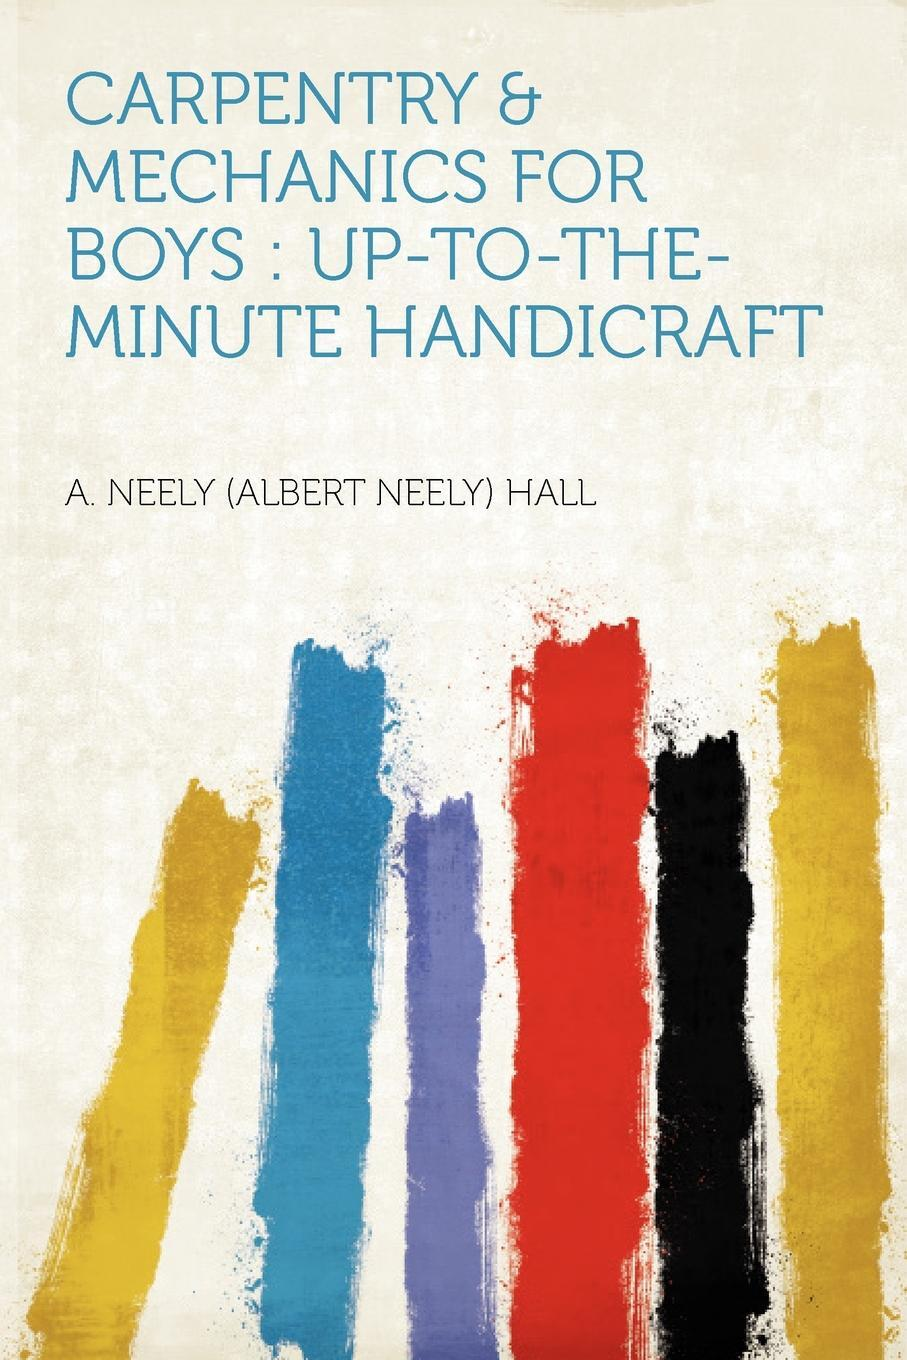 Carpentry & Mechanics for Boys. Up-to-the-minute Handicraft